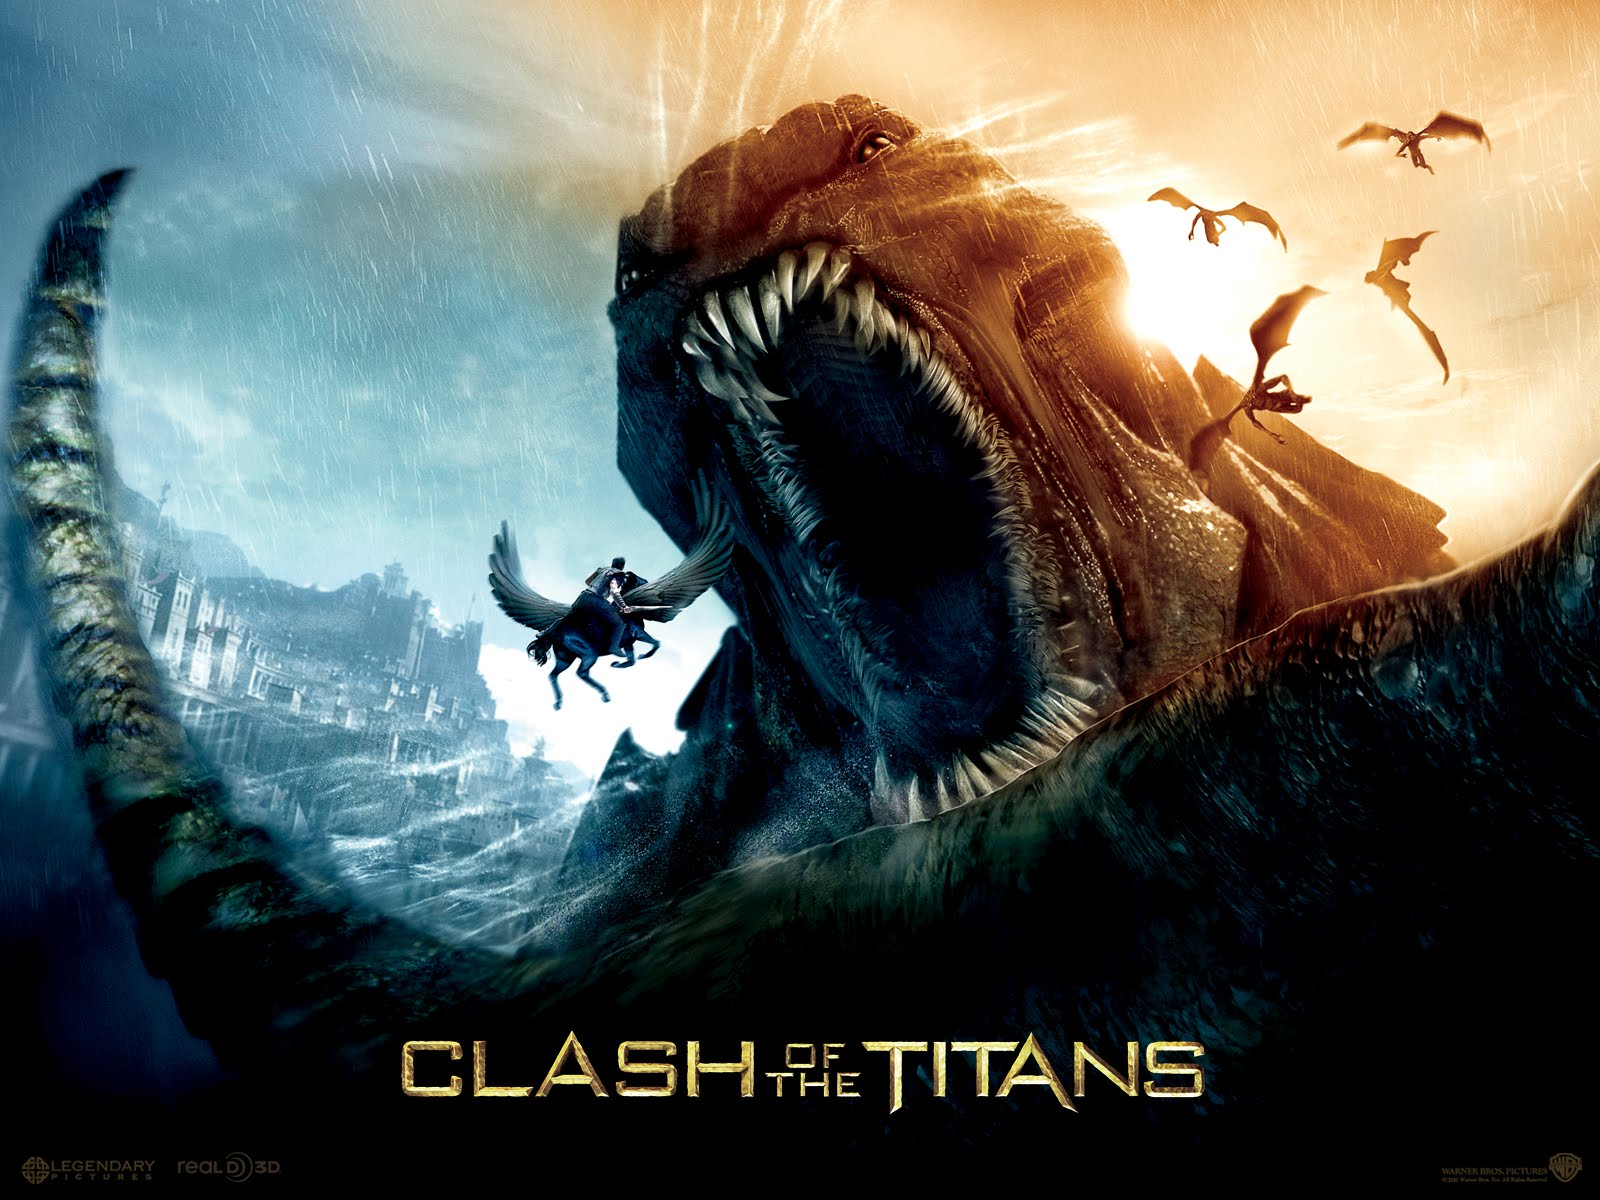 http://2.bp.blogspot.com/_sO_FX2iu0XU/S9DjAlO1q-I/AAAAAAAAGyo/_UqQ7cWJEC8/s1600/Clash_of_the_Titans_Wallpaper_4_800.jpg